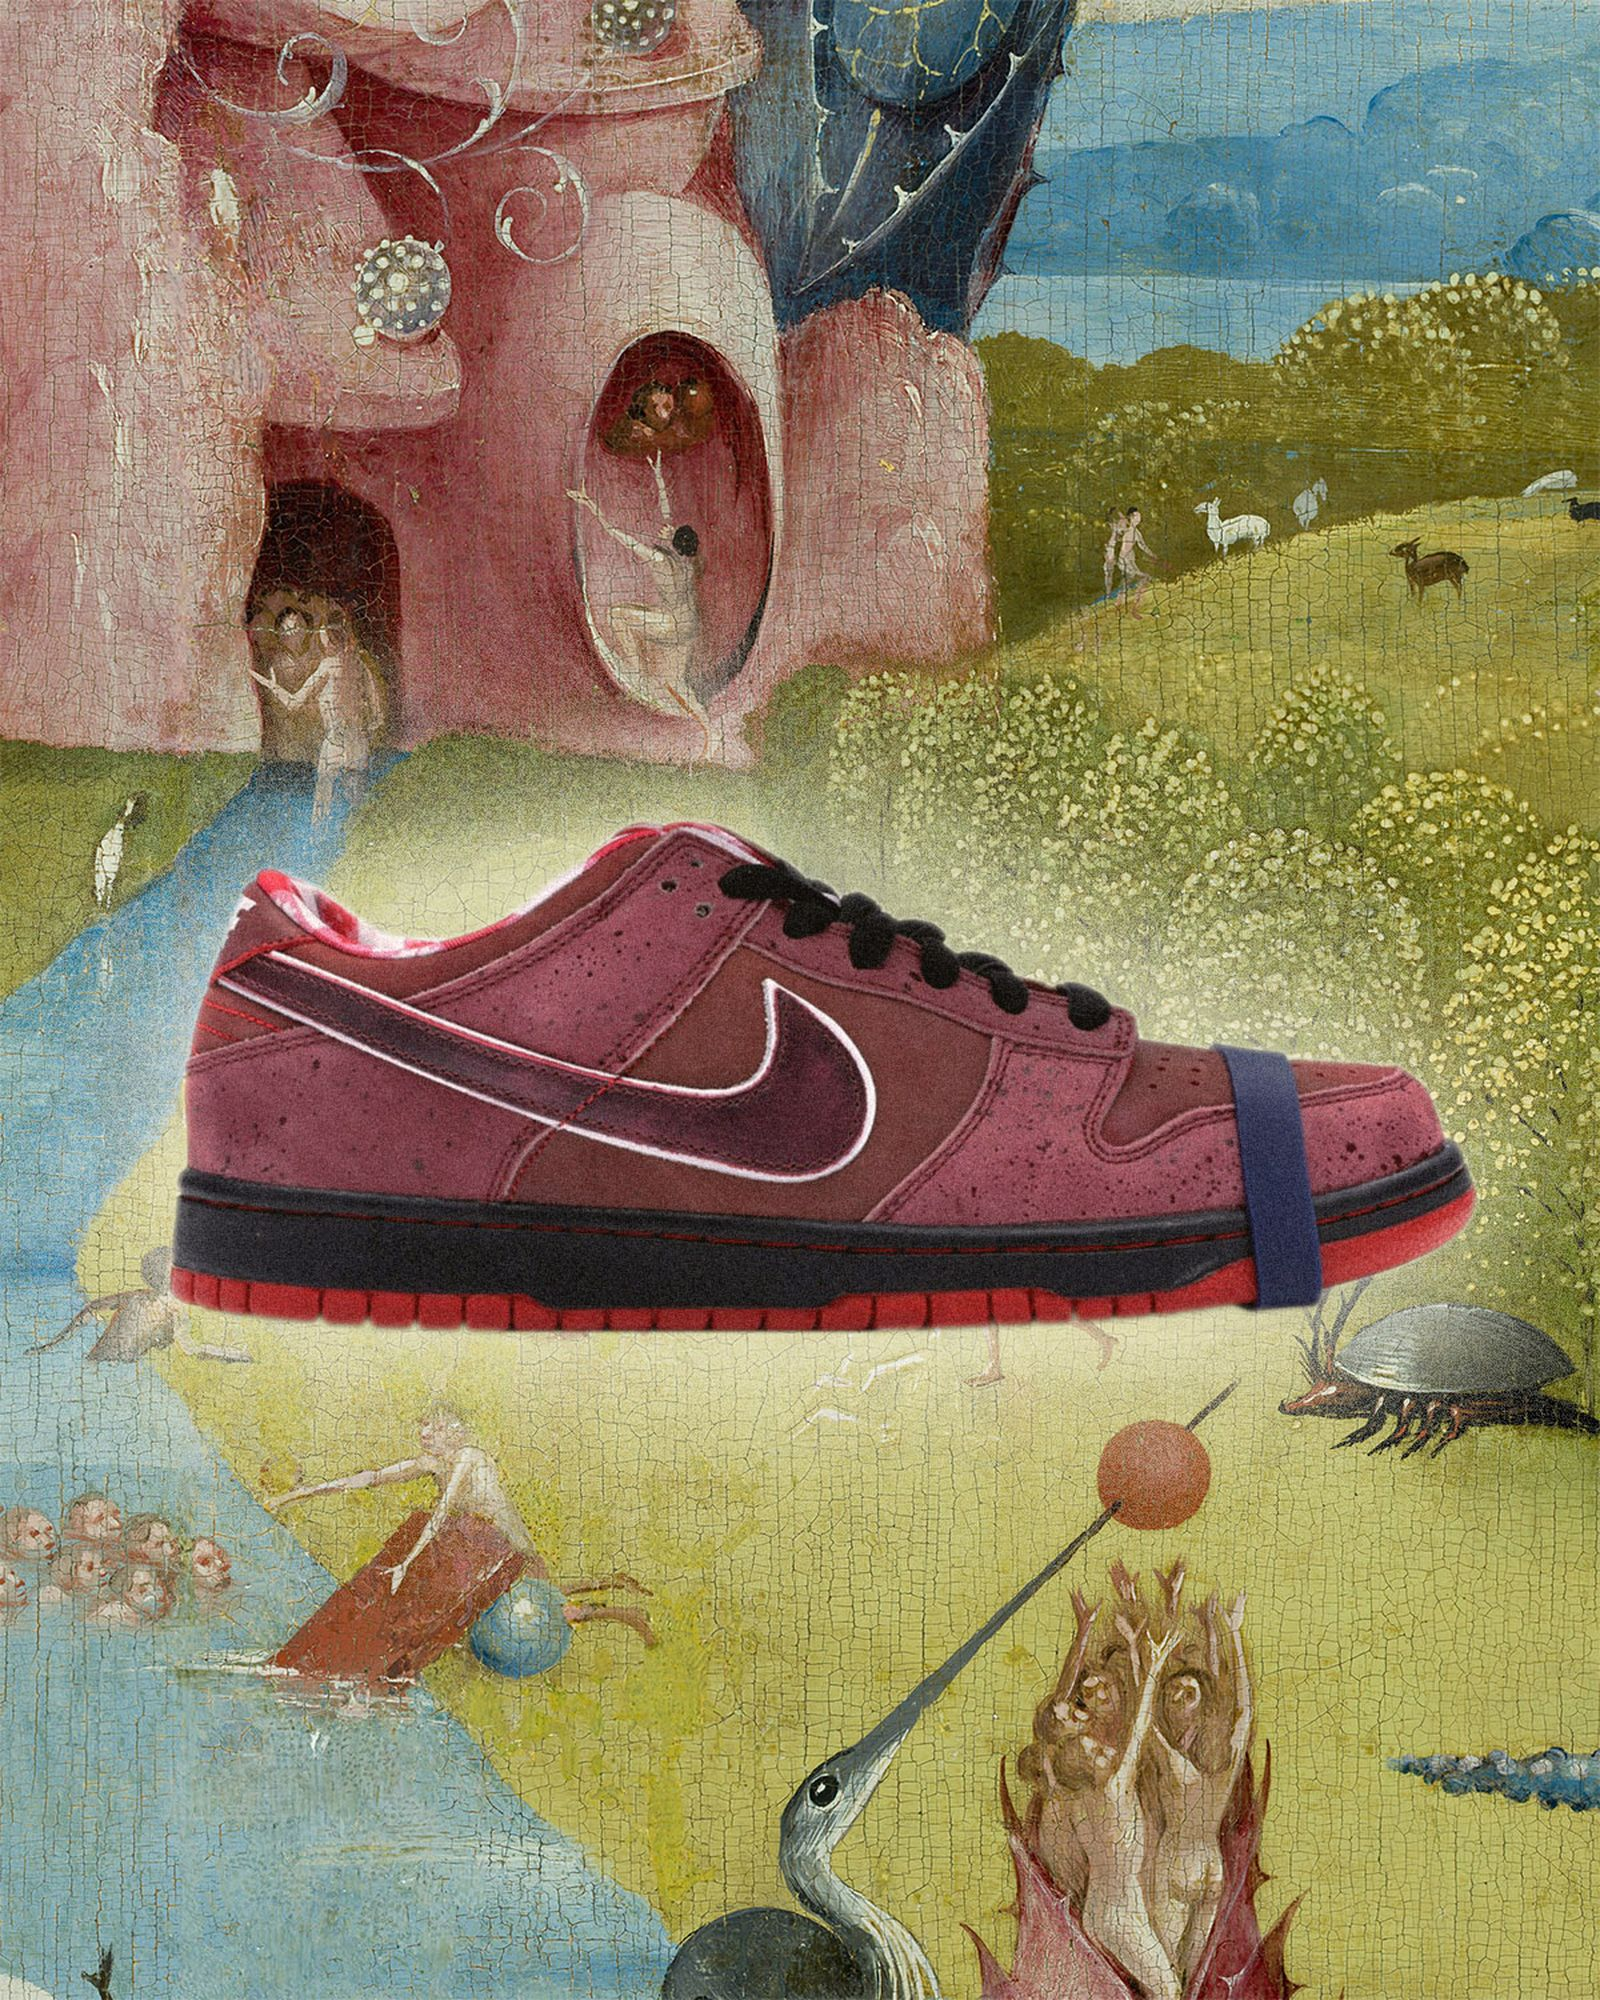 Nike-Dunk-SB-Low-Red-Lobster